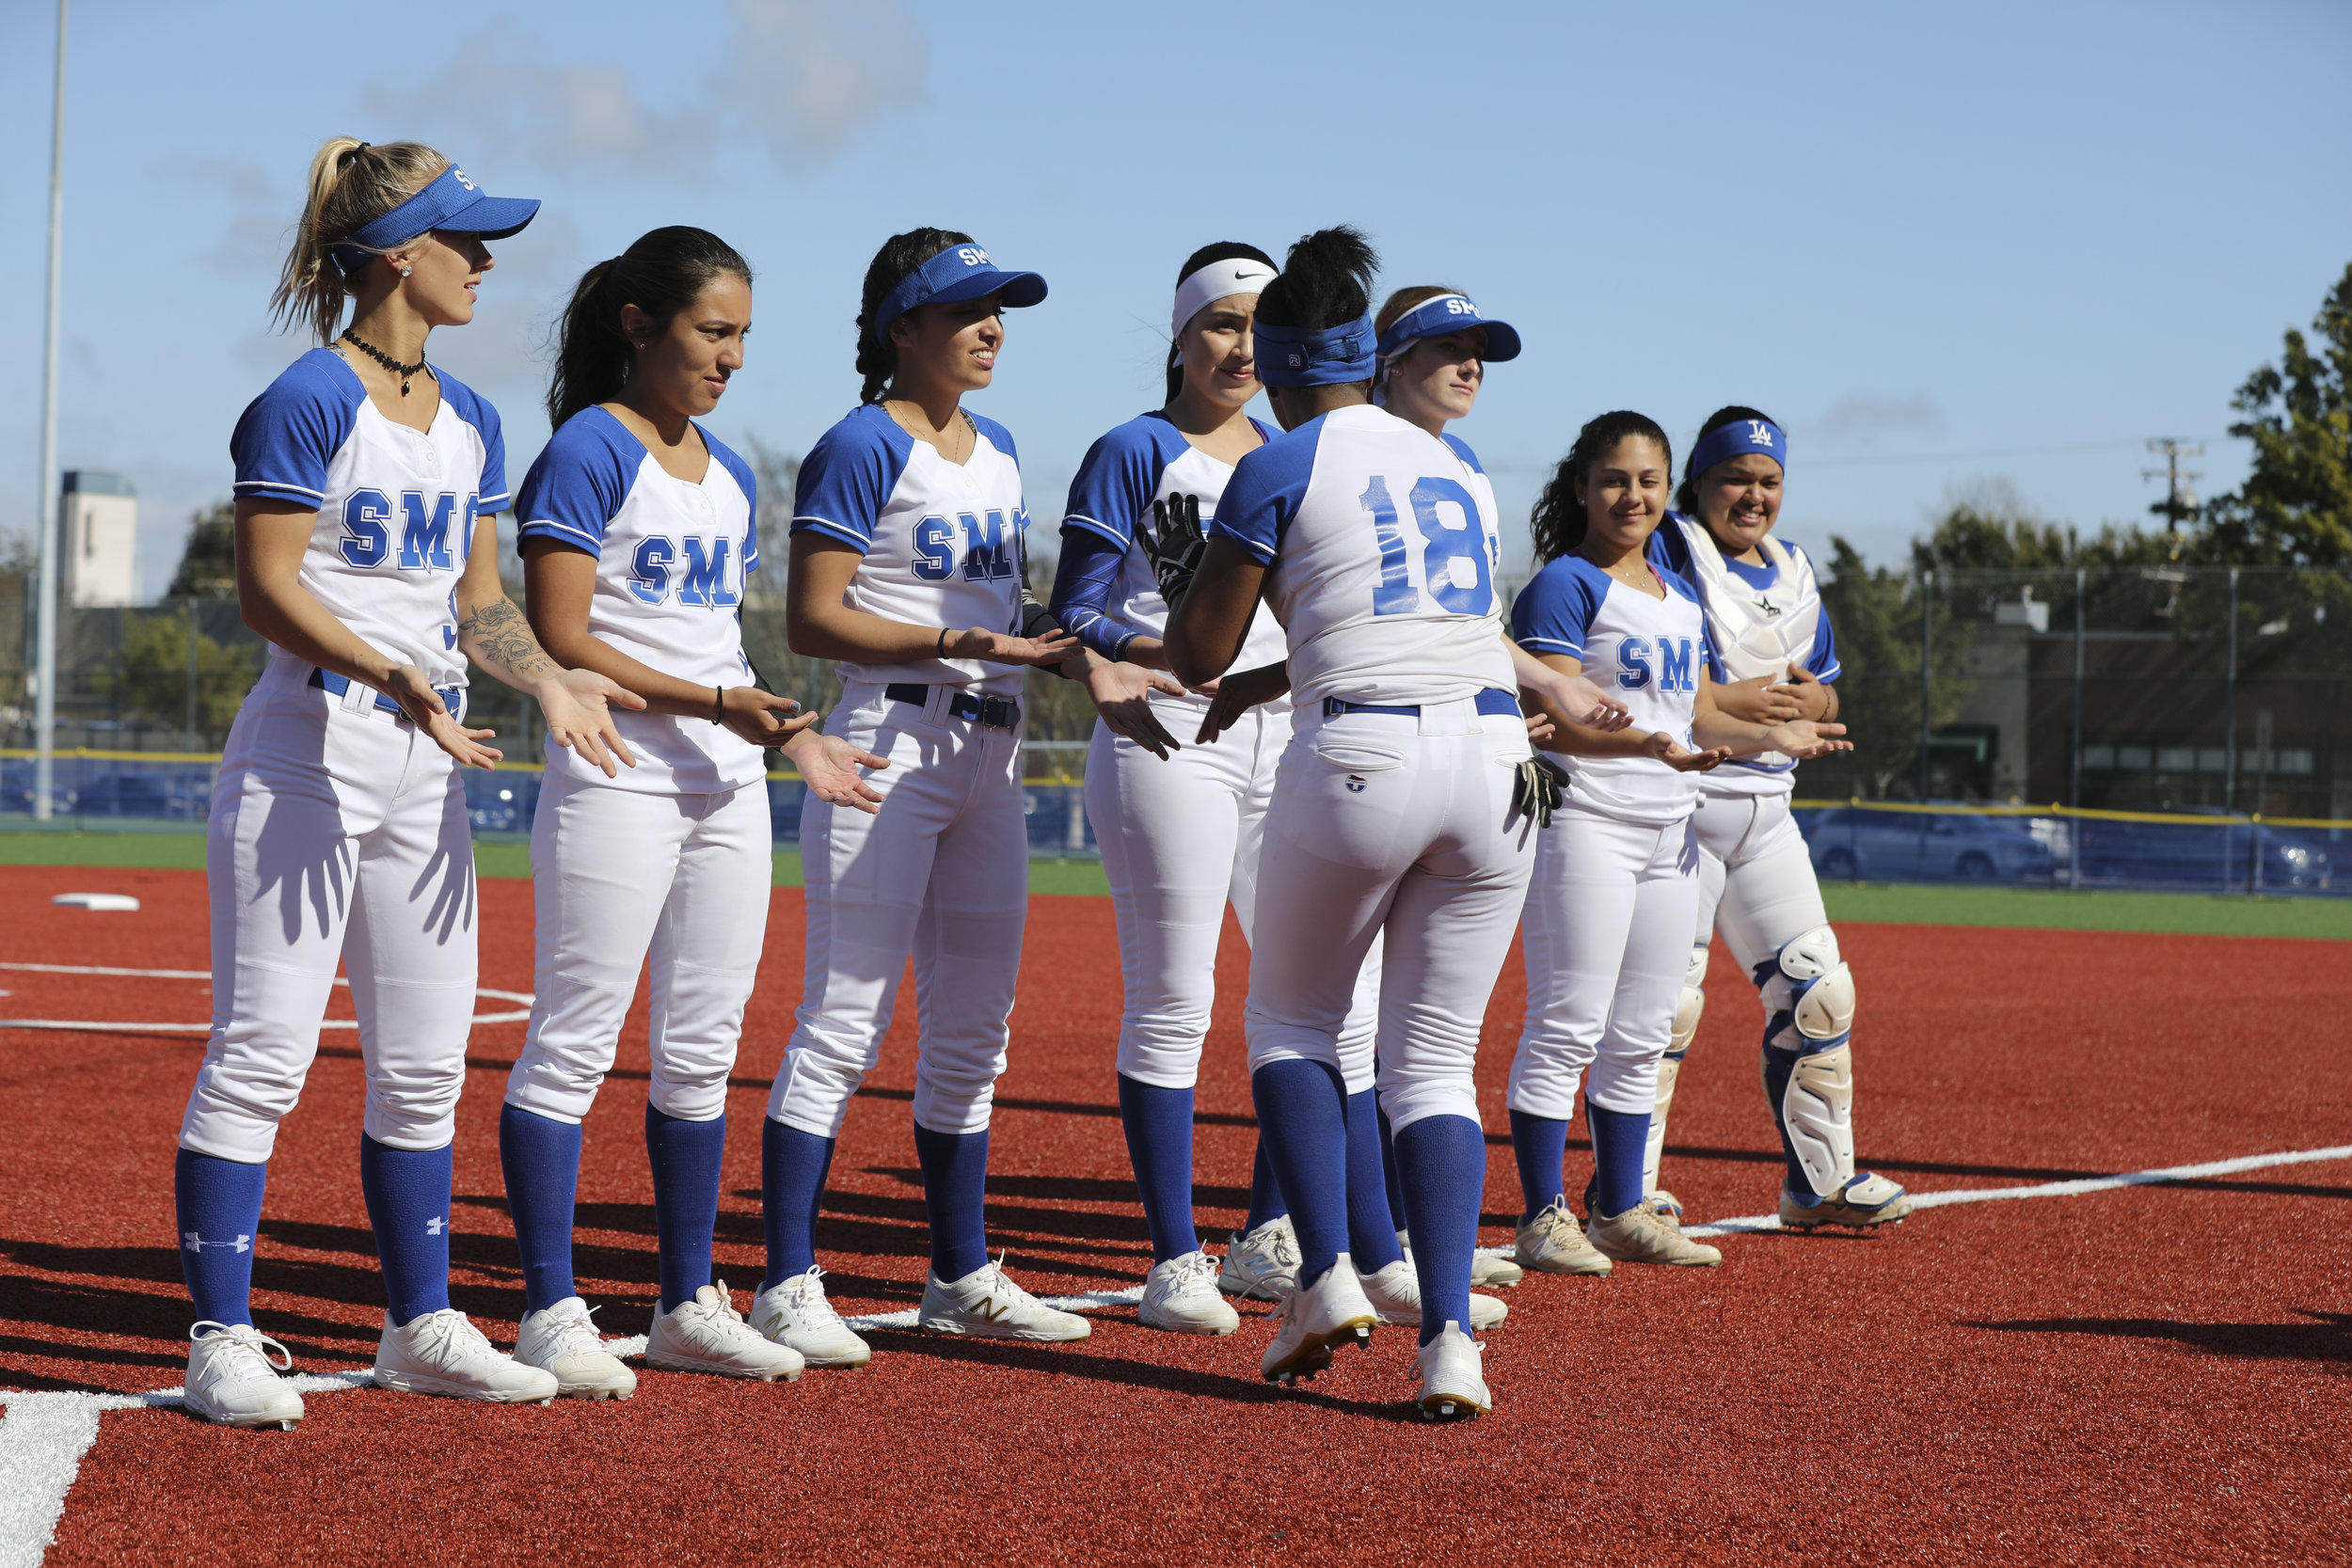 Corsairs Women's Softball starting line-up from Santa Monica College, Taylor Scott, Emma Soto, Alyssa Moreno, Erika Soto, Ireland Miessau, Nikki Valdez, Chica Sanchez and Jasmine welcome Jasmine Loftin at Santa Monica College and beat the Moorpark Raiders (score 9-5)on Thursday March 7, 2019. Photo by Tanya Barcessat